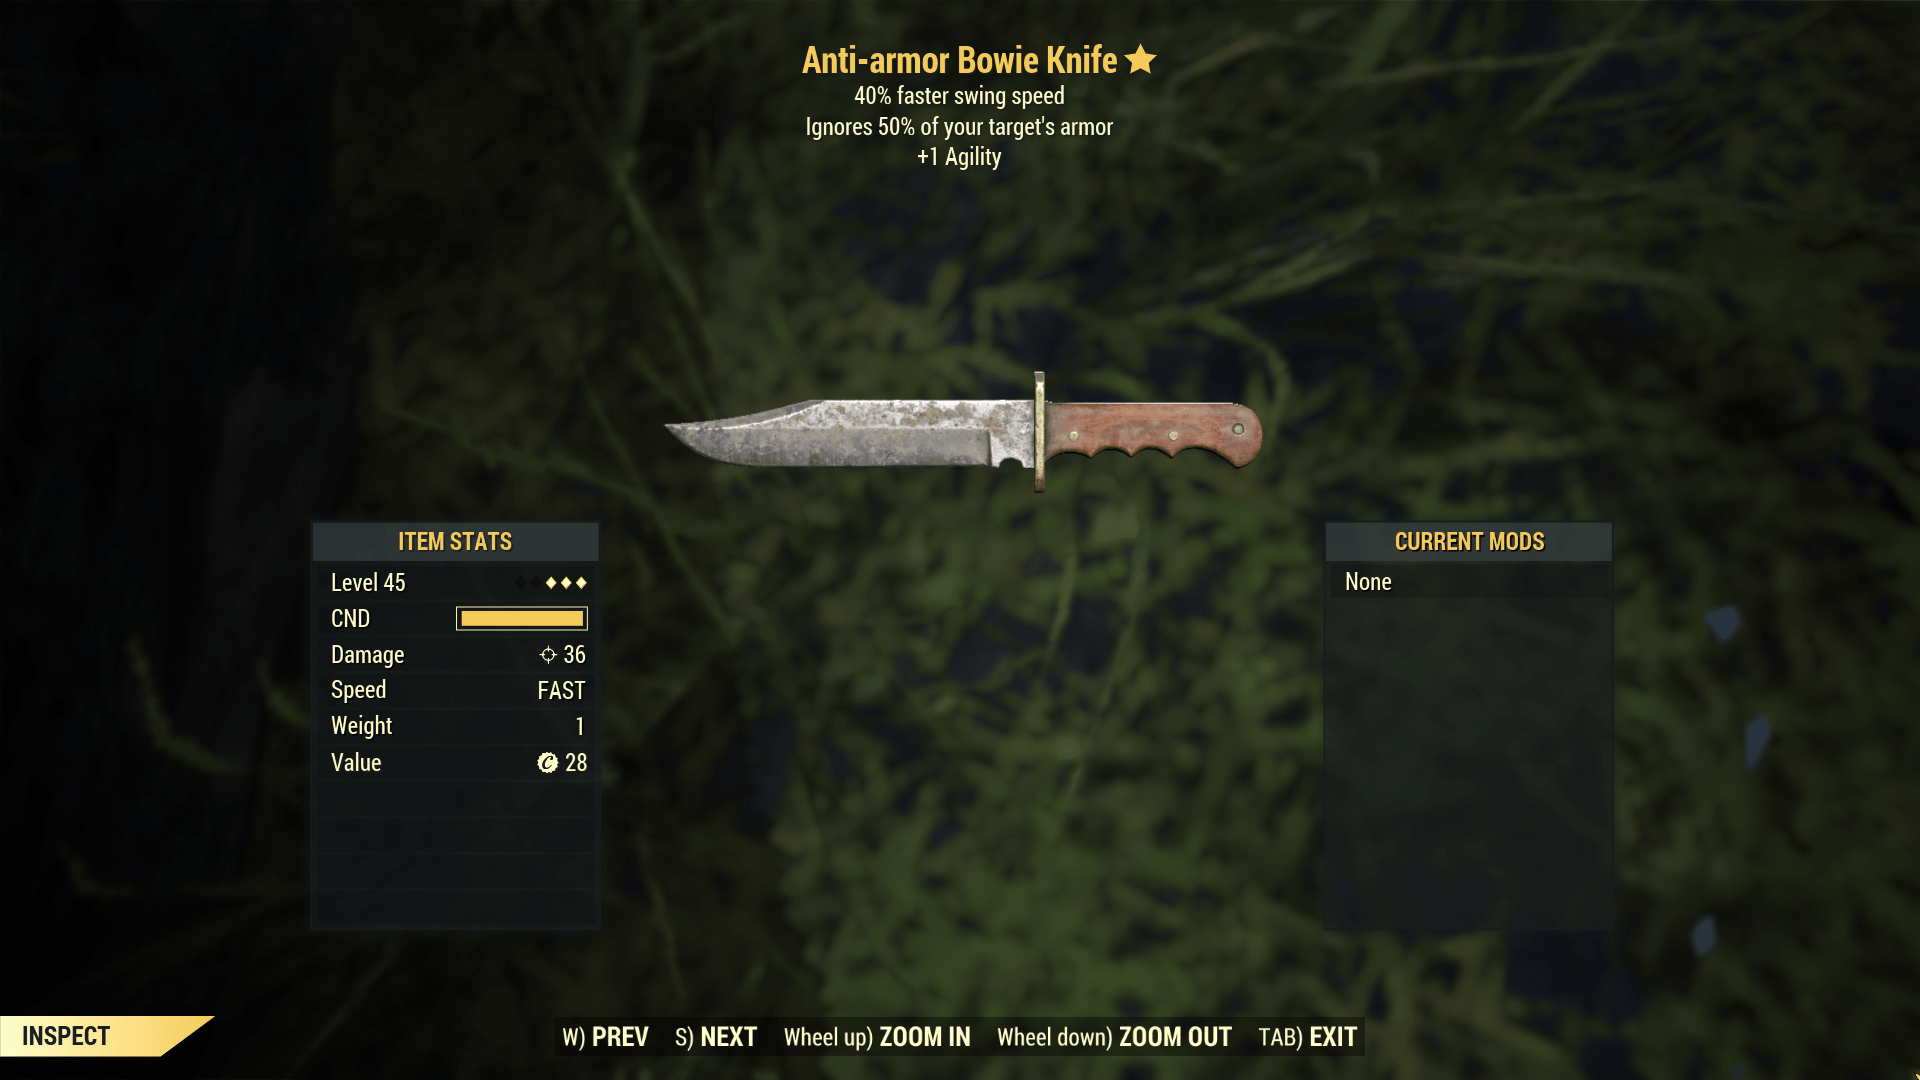 ★★★ Anti-Armor Bowie Knife[40% Faster Swing][+1 AGI]   FAST DELIVERY  